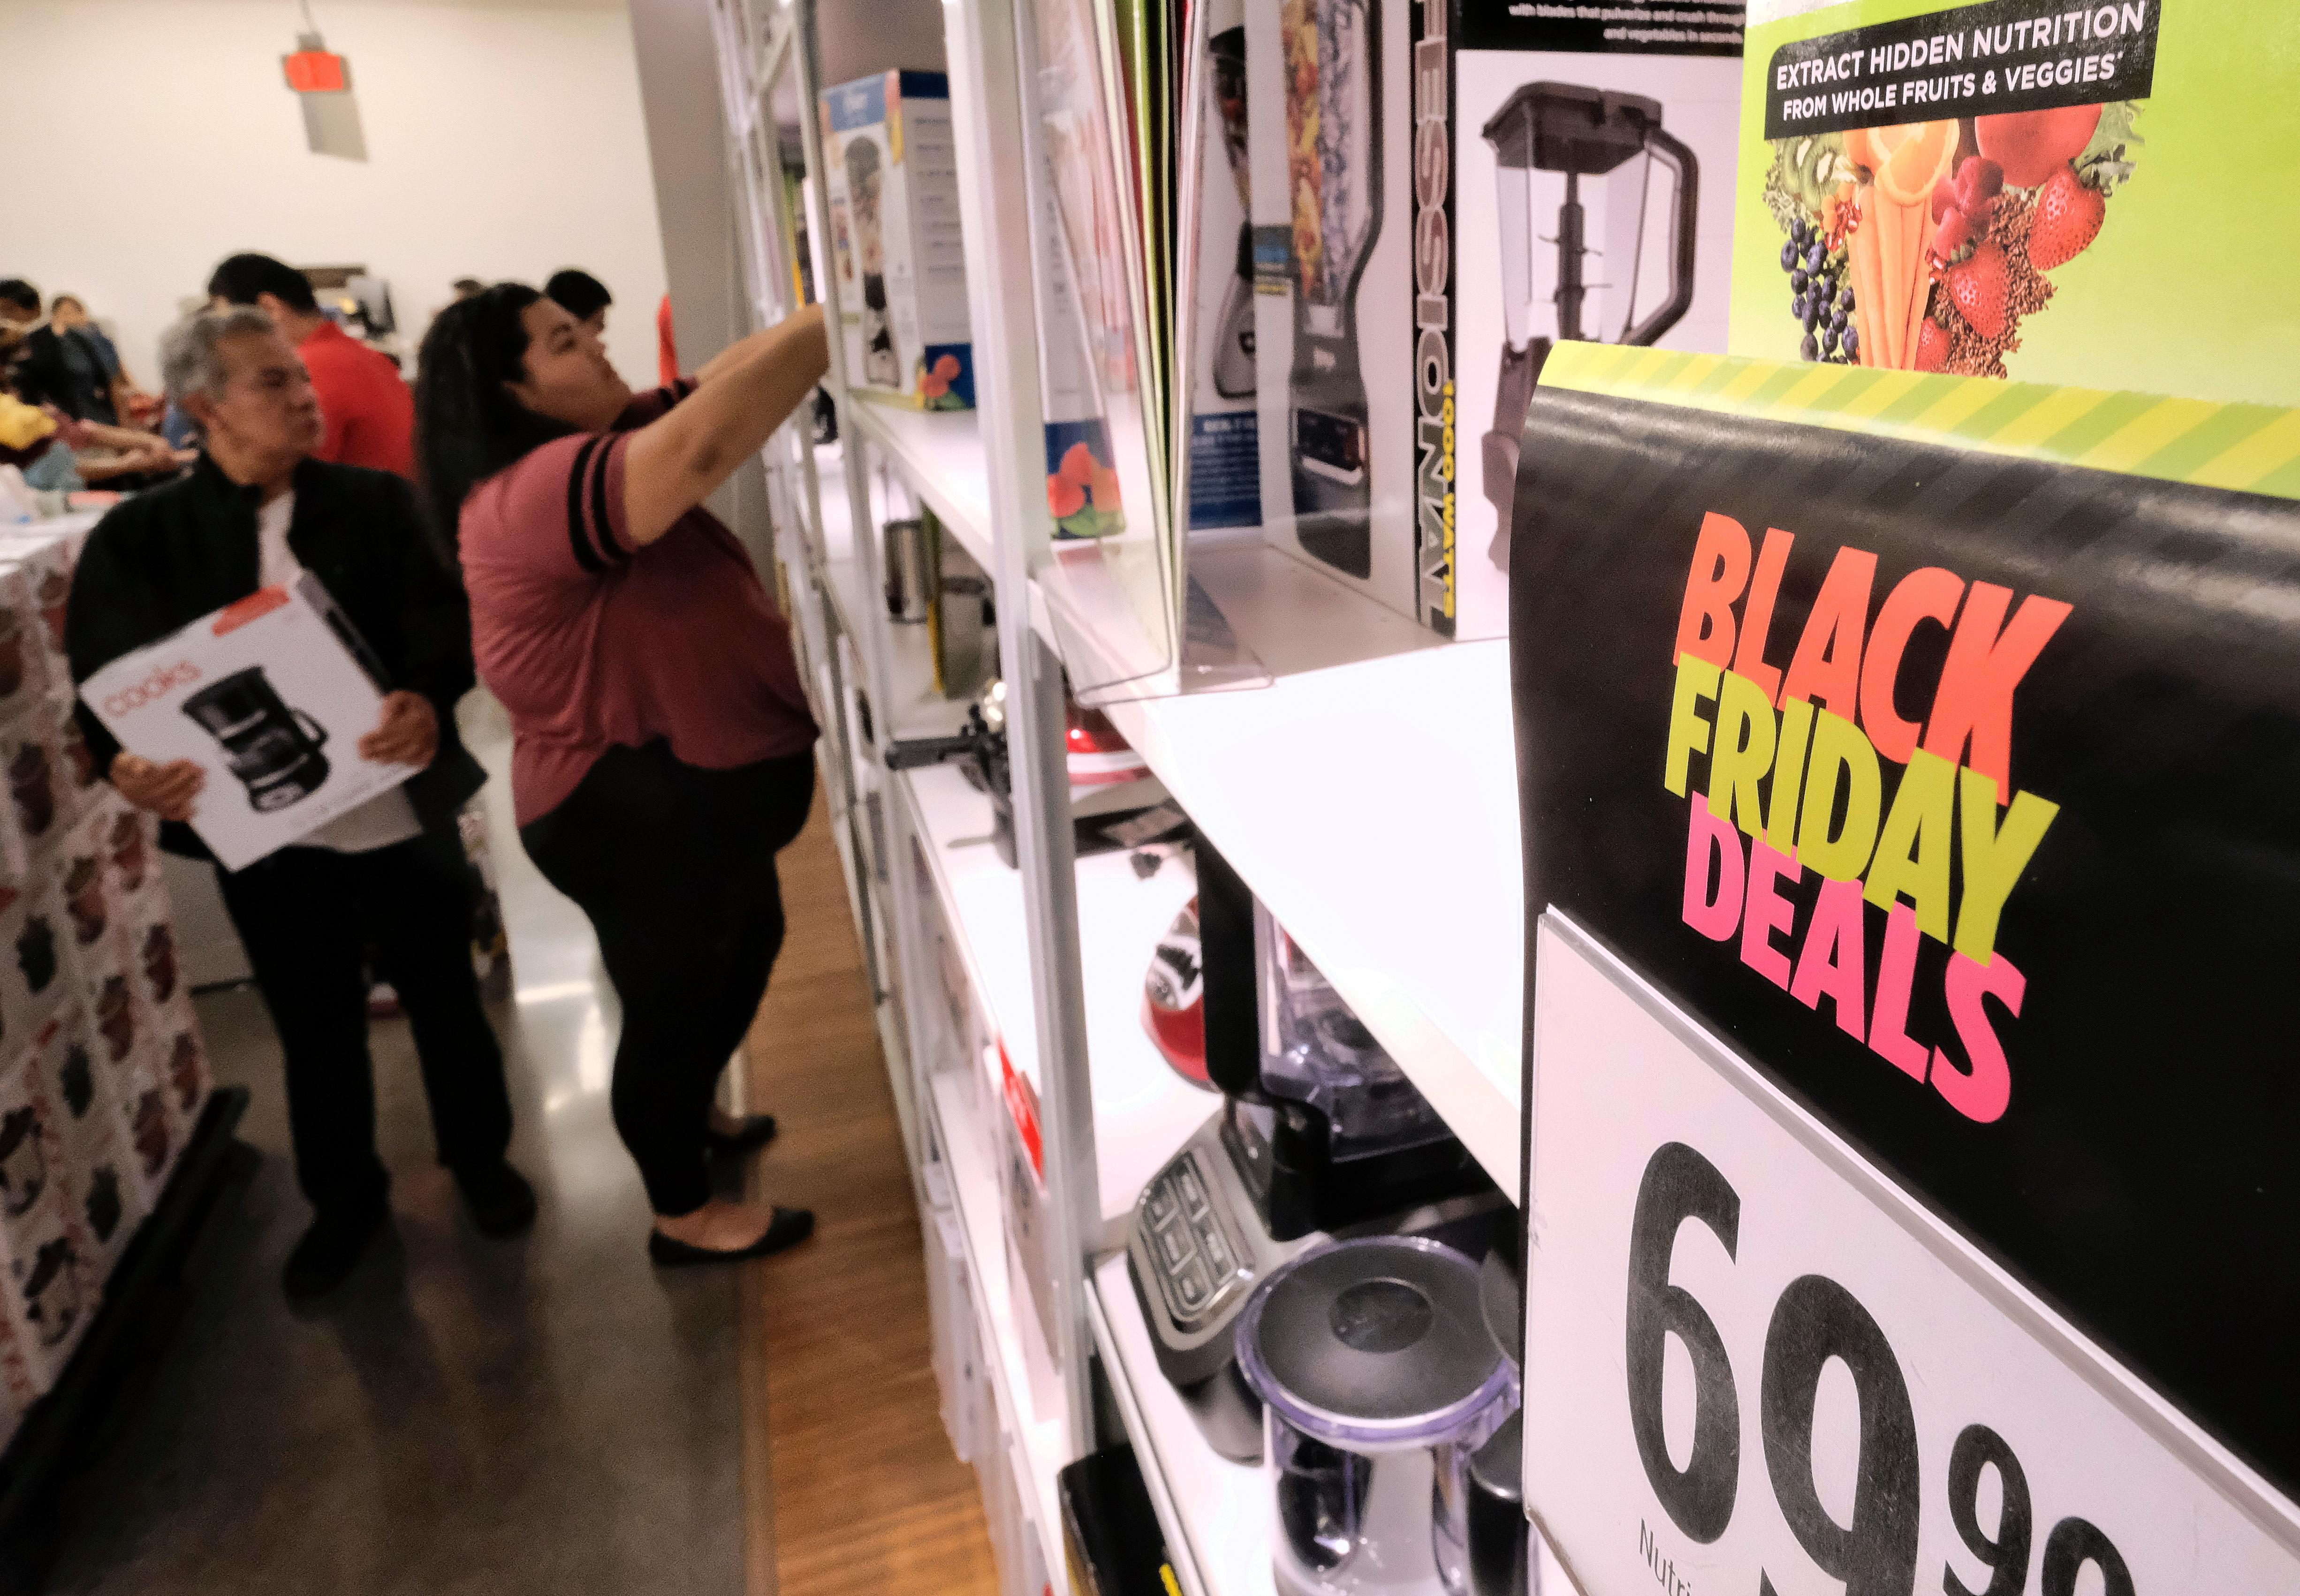 Thanksgiving holiday shoppers check out the bargains at the JCPenny store in Glendale, Calif., Thursday, Nov. 23, 2017. Shoppers are hitting the stores on Thanksgiving as retailers under pressure look for ways to poach shoppers from their rivals. As the holiday shopping season officially kicked off, retailers are counting on a lift from a better economy. (AP Photo/Richard Vogel)